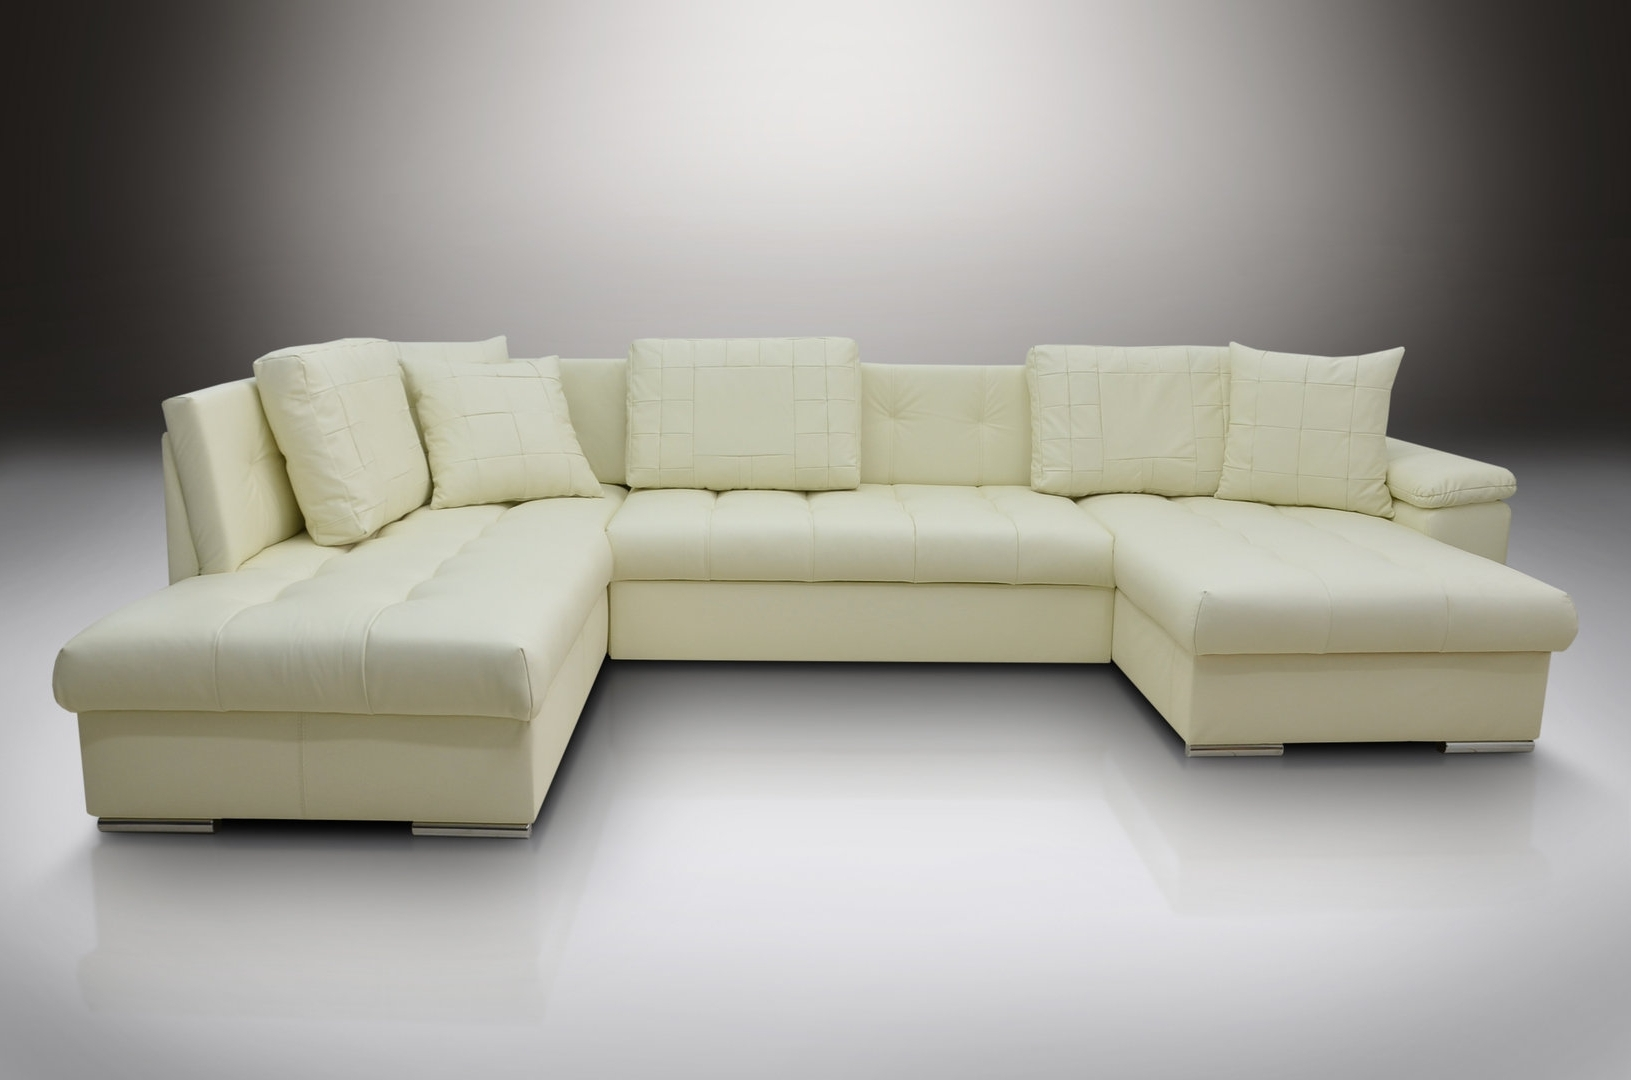 Sofa : Extra Large Sectional Sofas U Shaped Sofa Design In Well Known Blue U Shaped Sectionals (View 14 of 20)